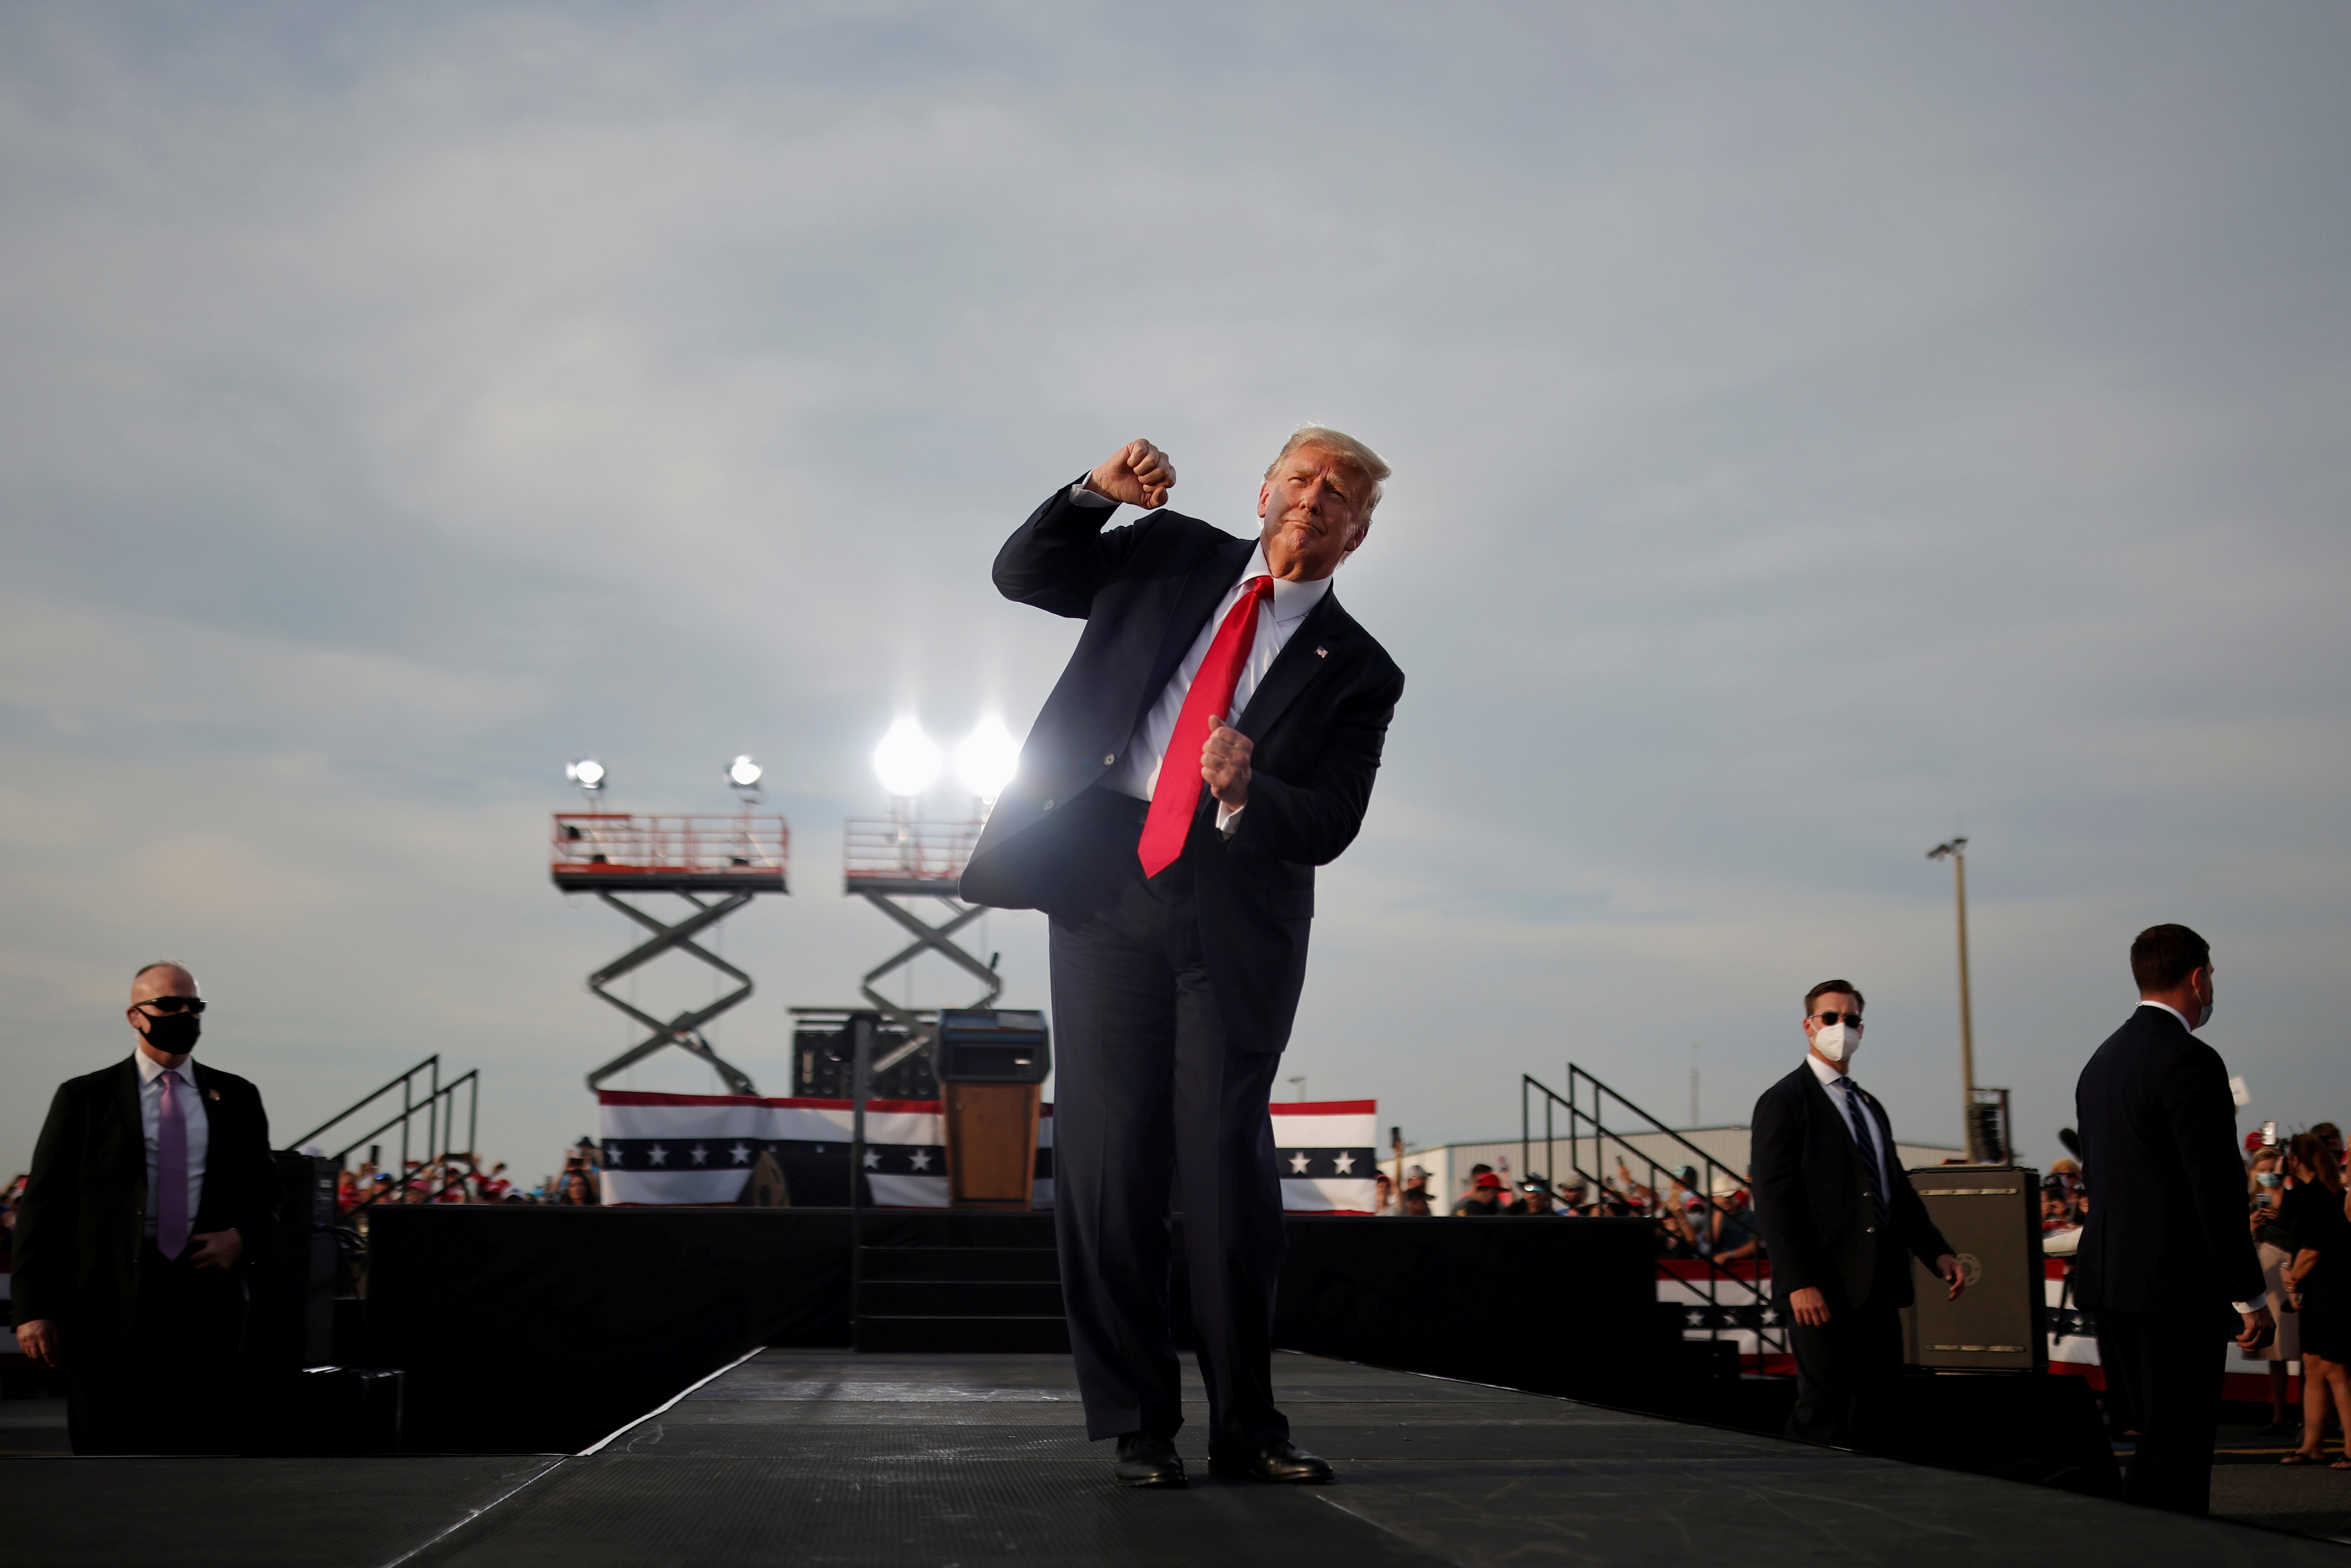 U.S. President Donald Trump reacts at the end of his campaign rally at Ocala International Airport in Ocala, Florida, U.S., October 16, 2020. Carlos Barria: